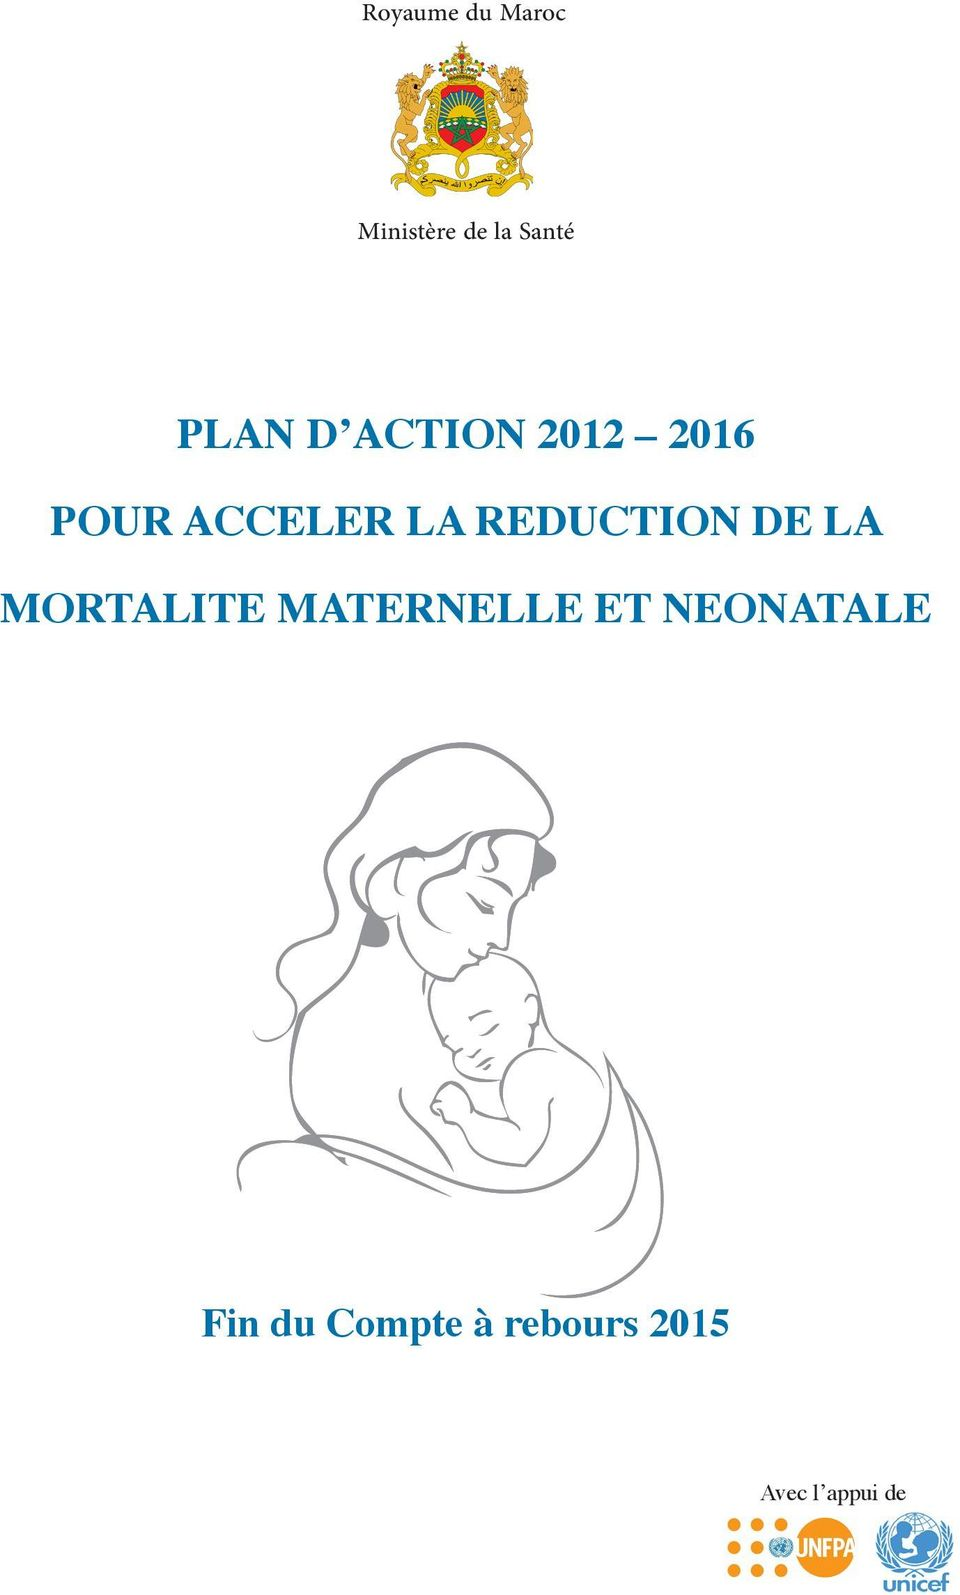 REDUCTION DE LA MORTALITE MATERNELLE ET